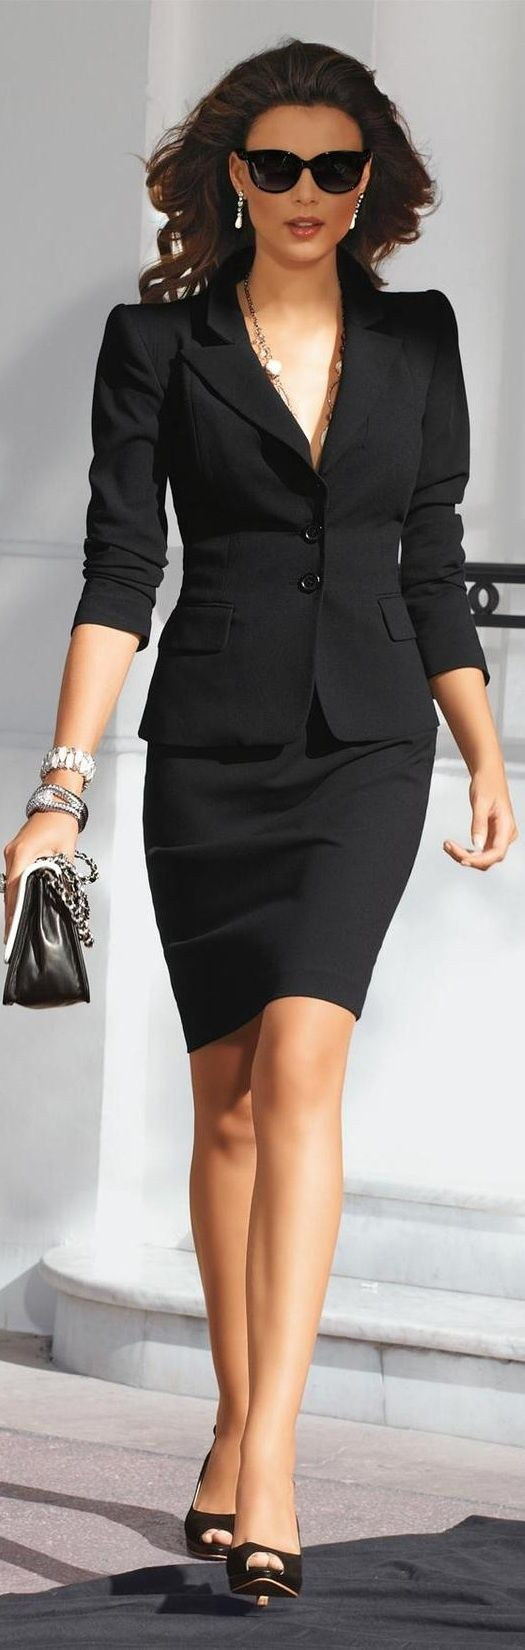 Recomm. DJH. Nothing says power like a black suit. It's simple, elegant, and commanding.